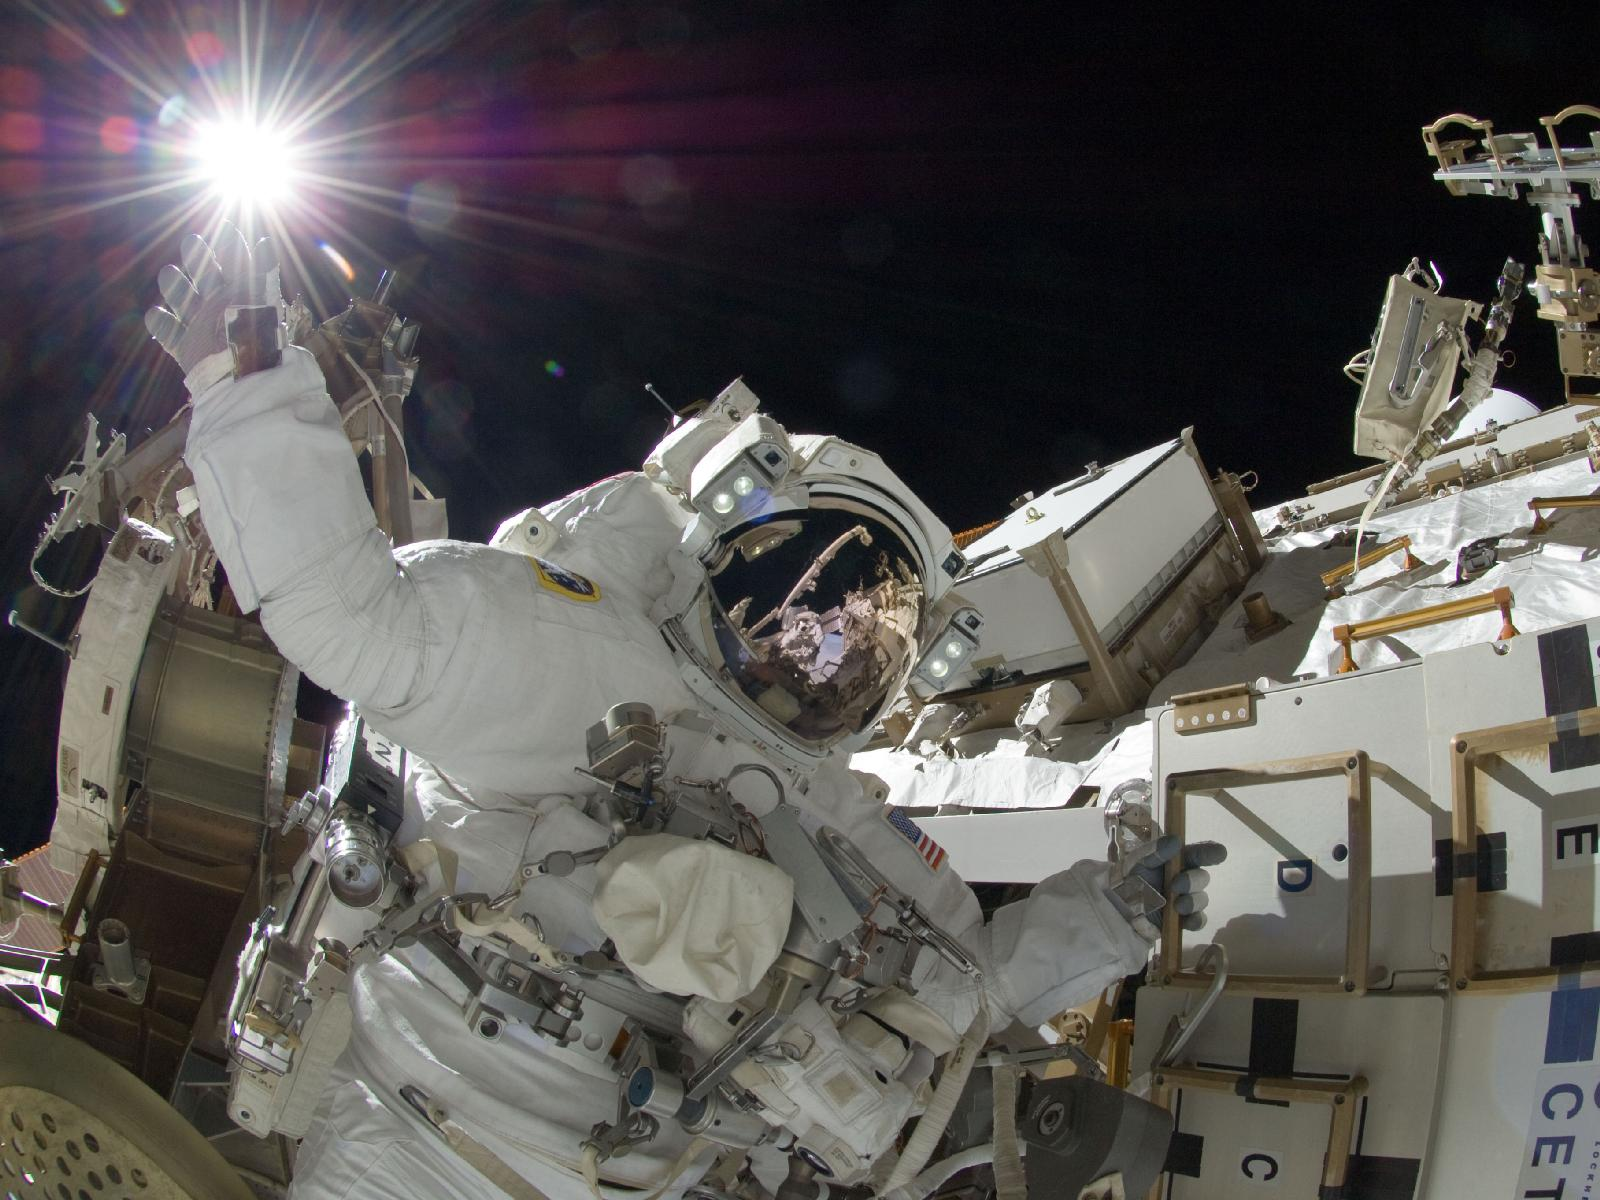 Spacewalking Sunita Williams Touches the Sun